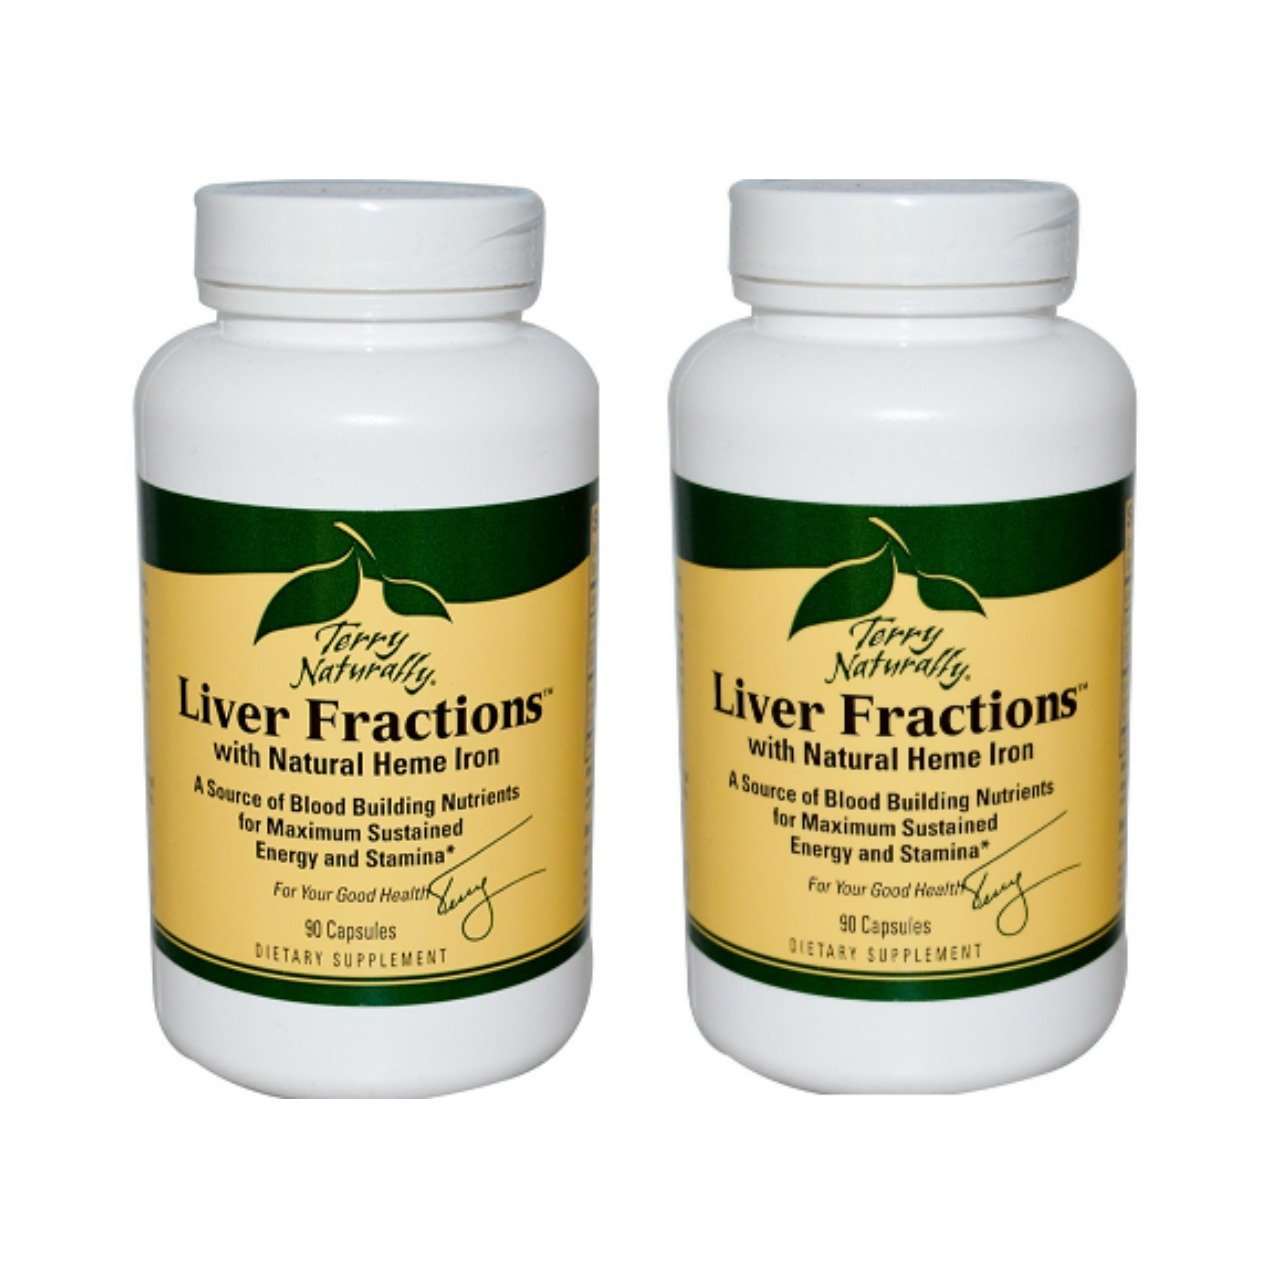 Terry Naturally EuroPharma Heme Iron from Liver Fractions, 90 Capsules -2 Pack